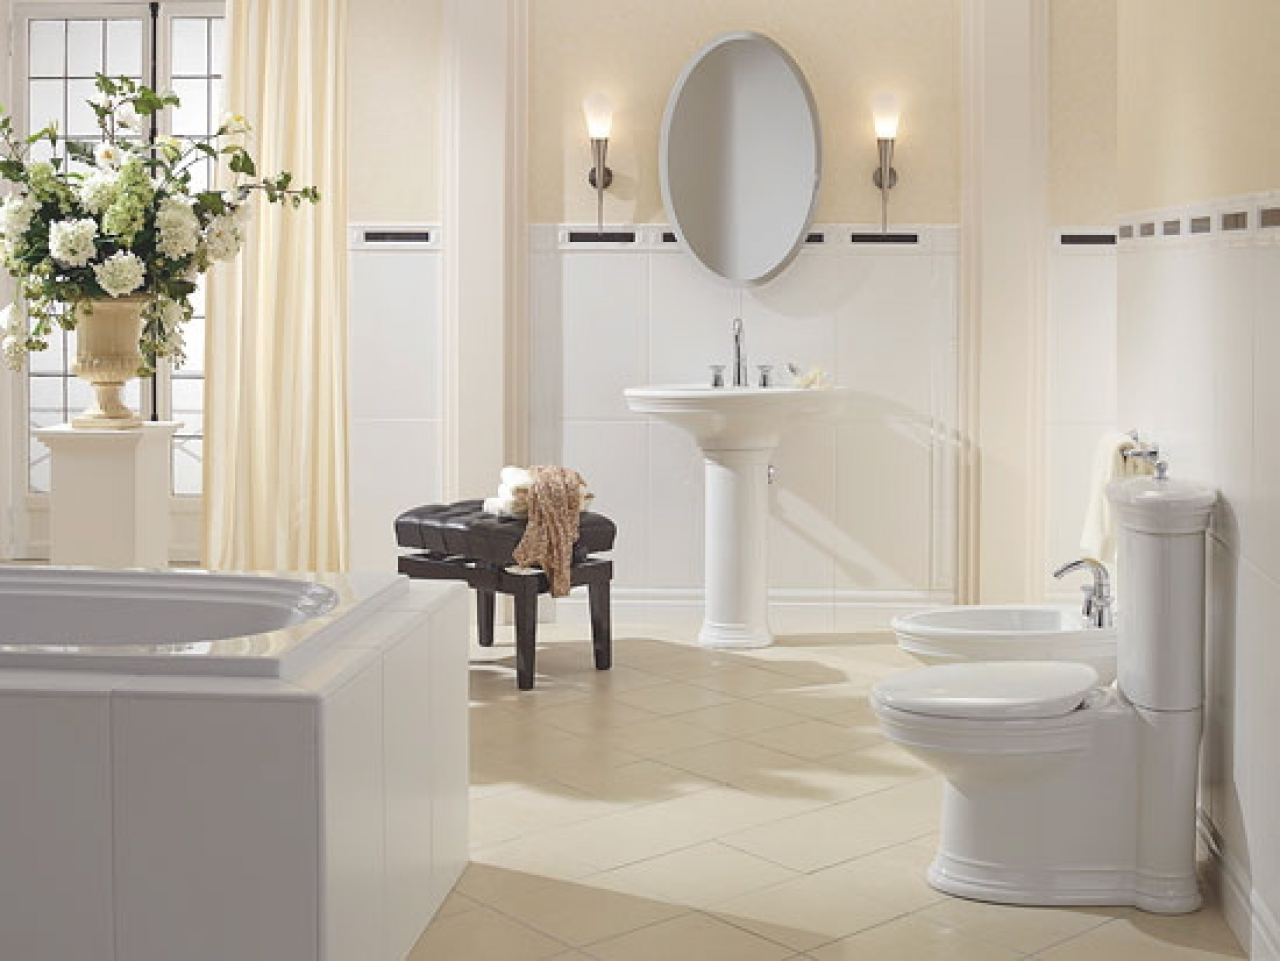 Elegant bathrooms uk house decor ideas for Bathroom decor uk